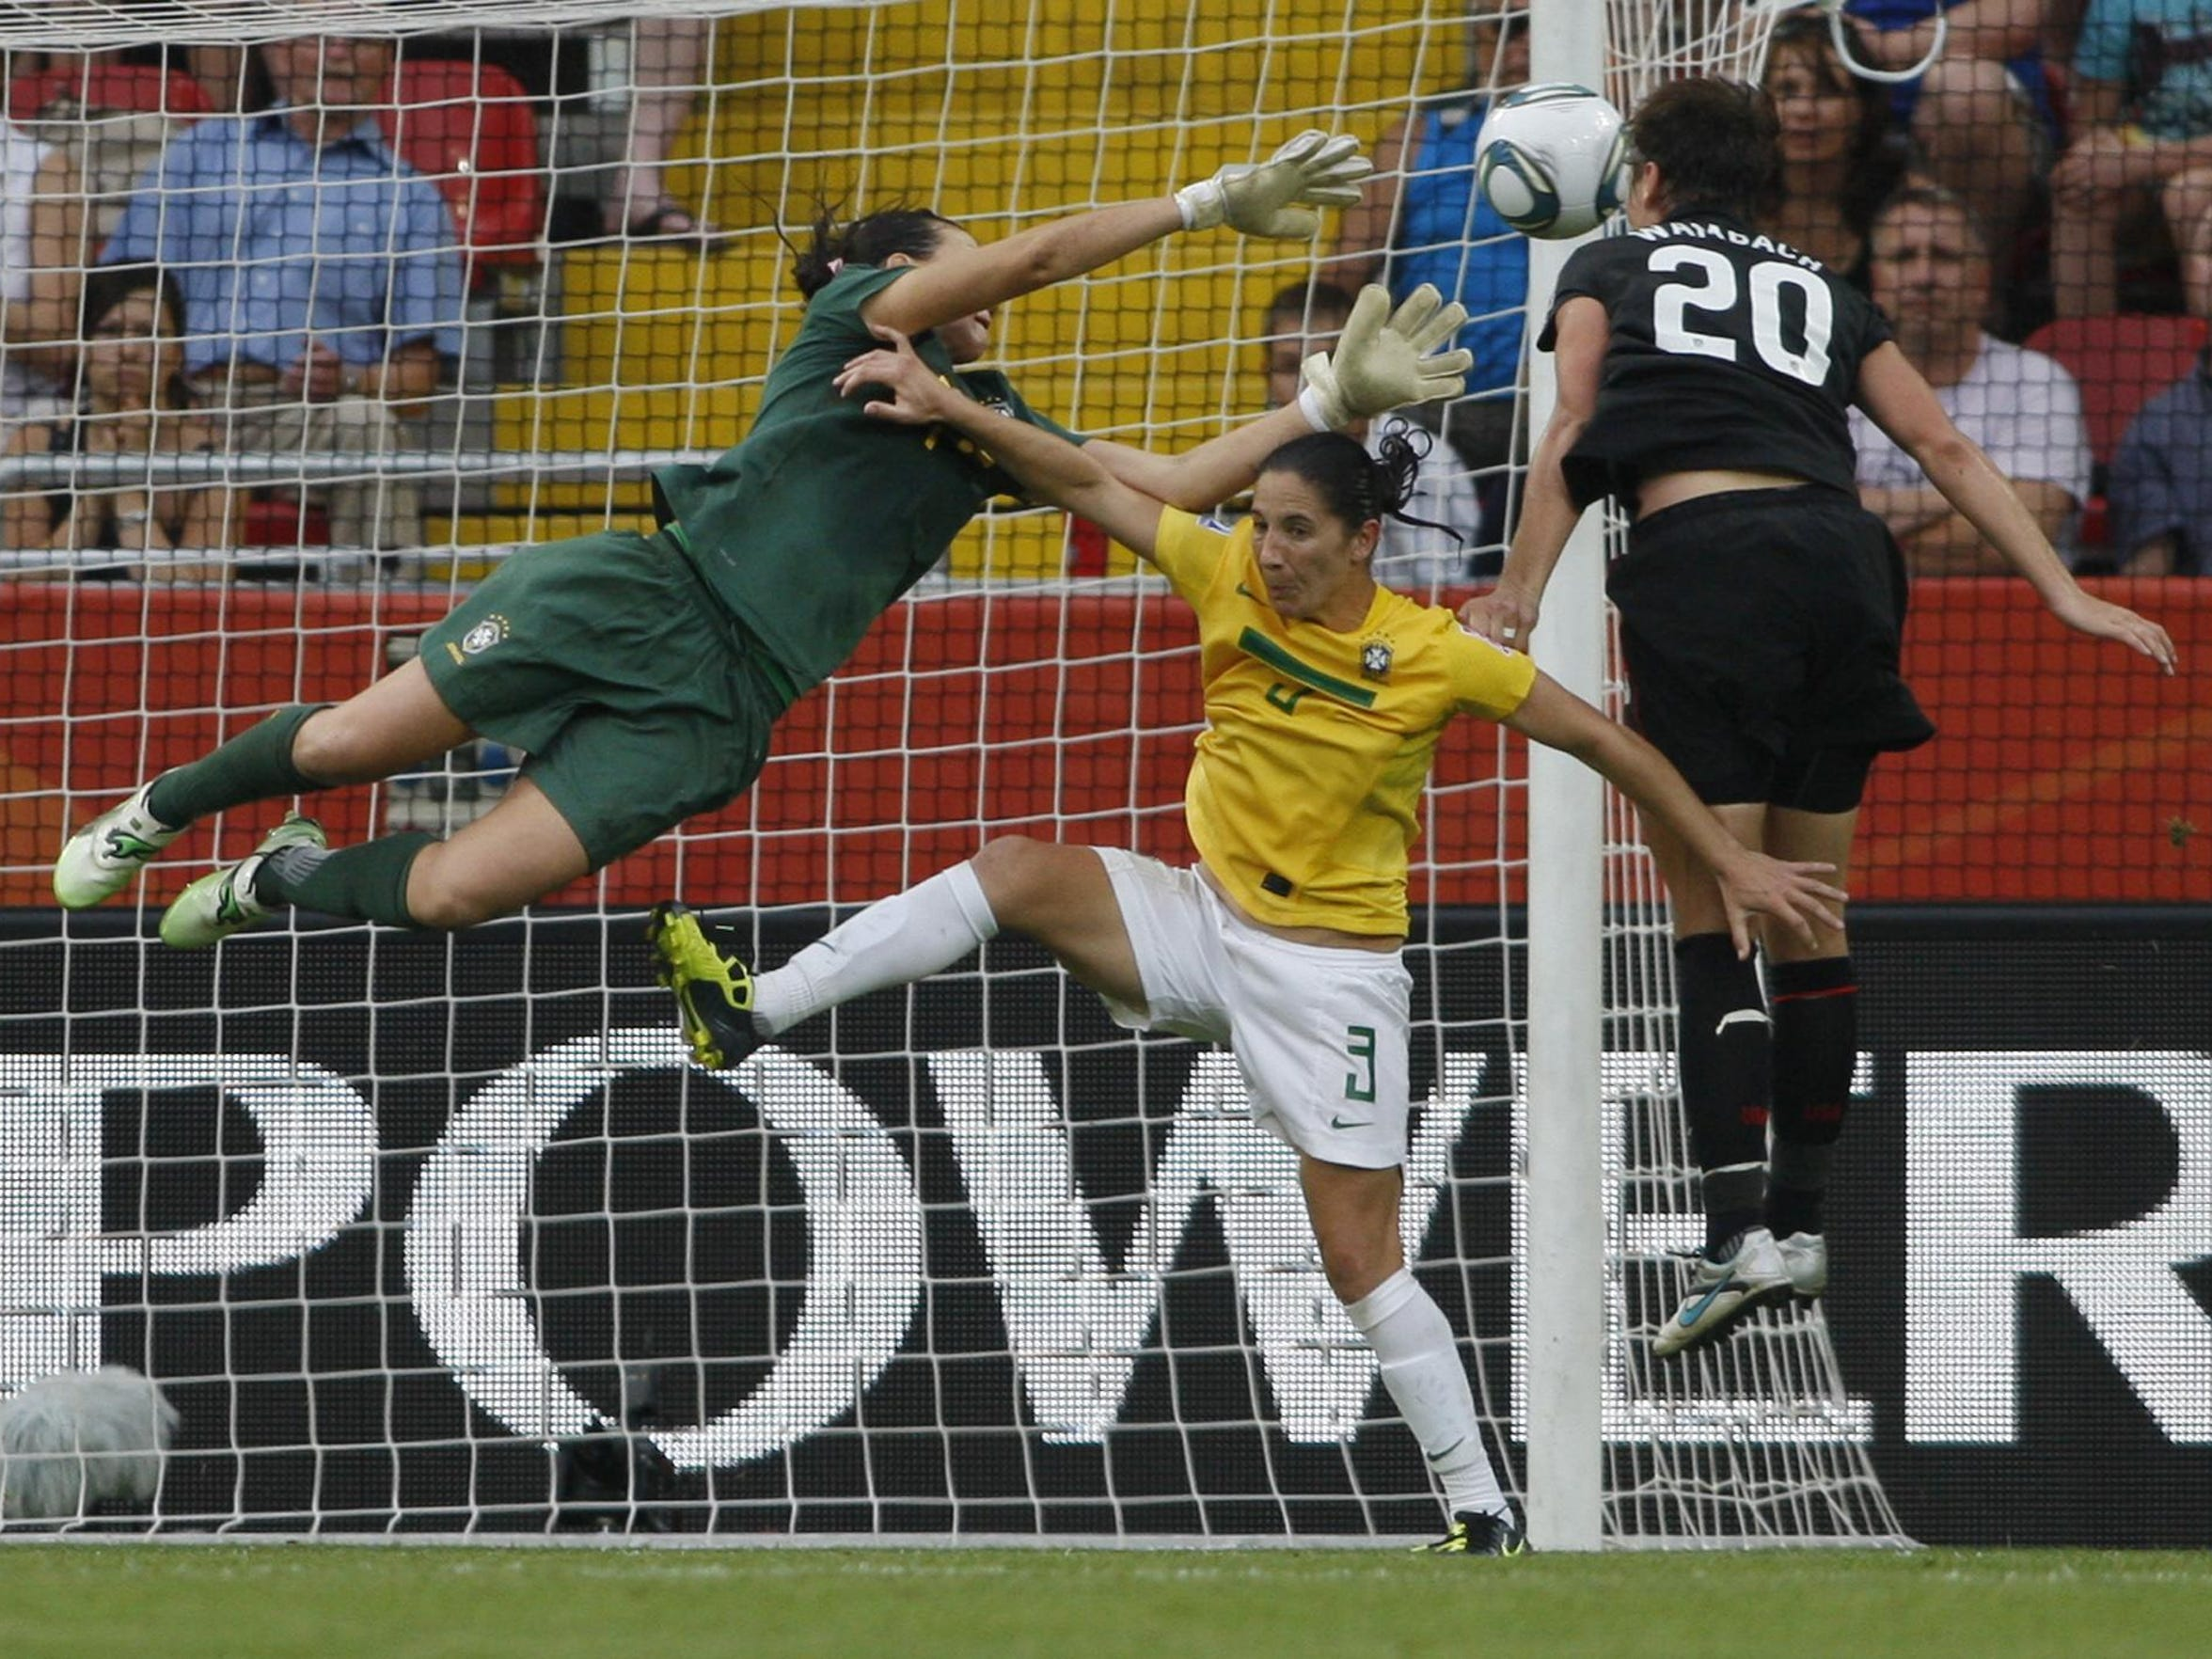 Abby Wambach leaps to head in a dramatic goal off a Megan Rapinoe cross in extra time against Brazil in the World Cup quarterfinals in Germany in 2011.